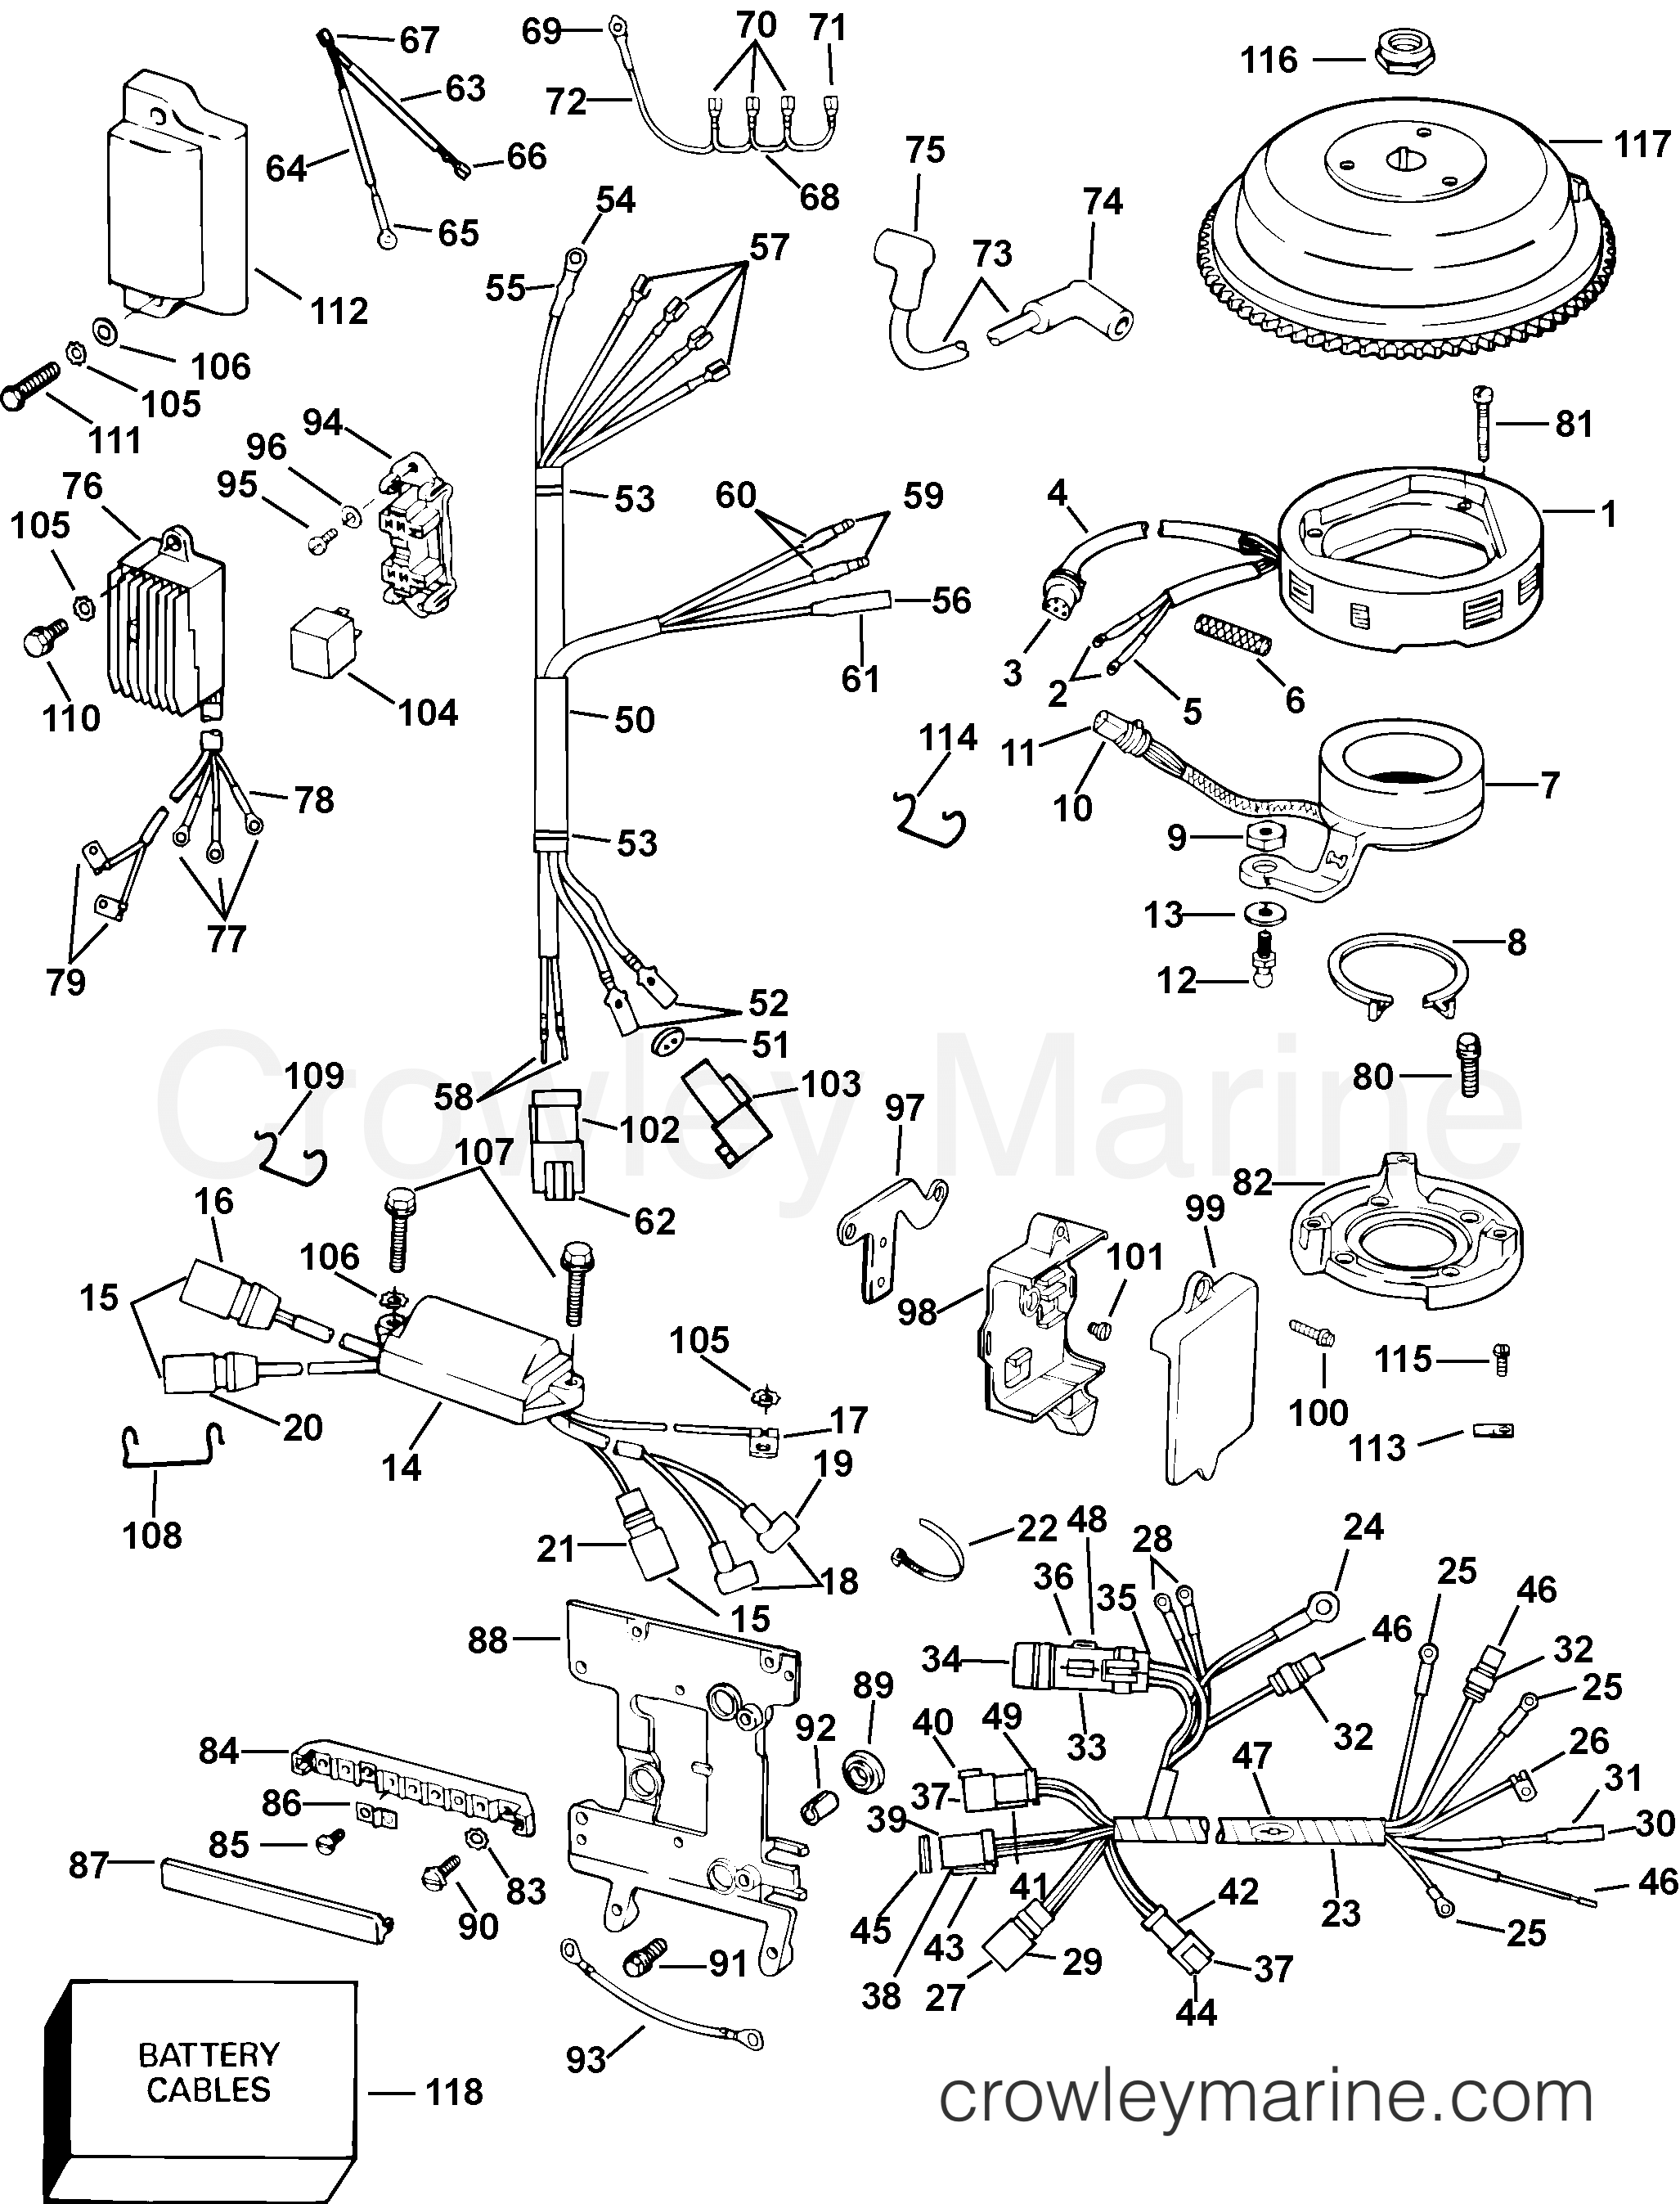 Electrical Ignition System